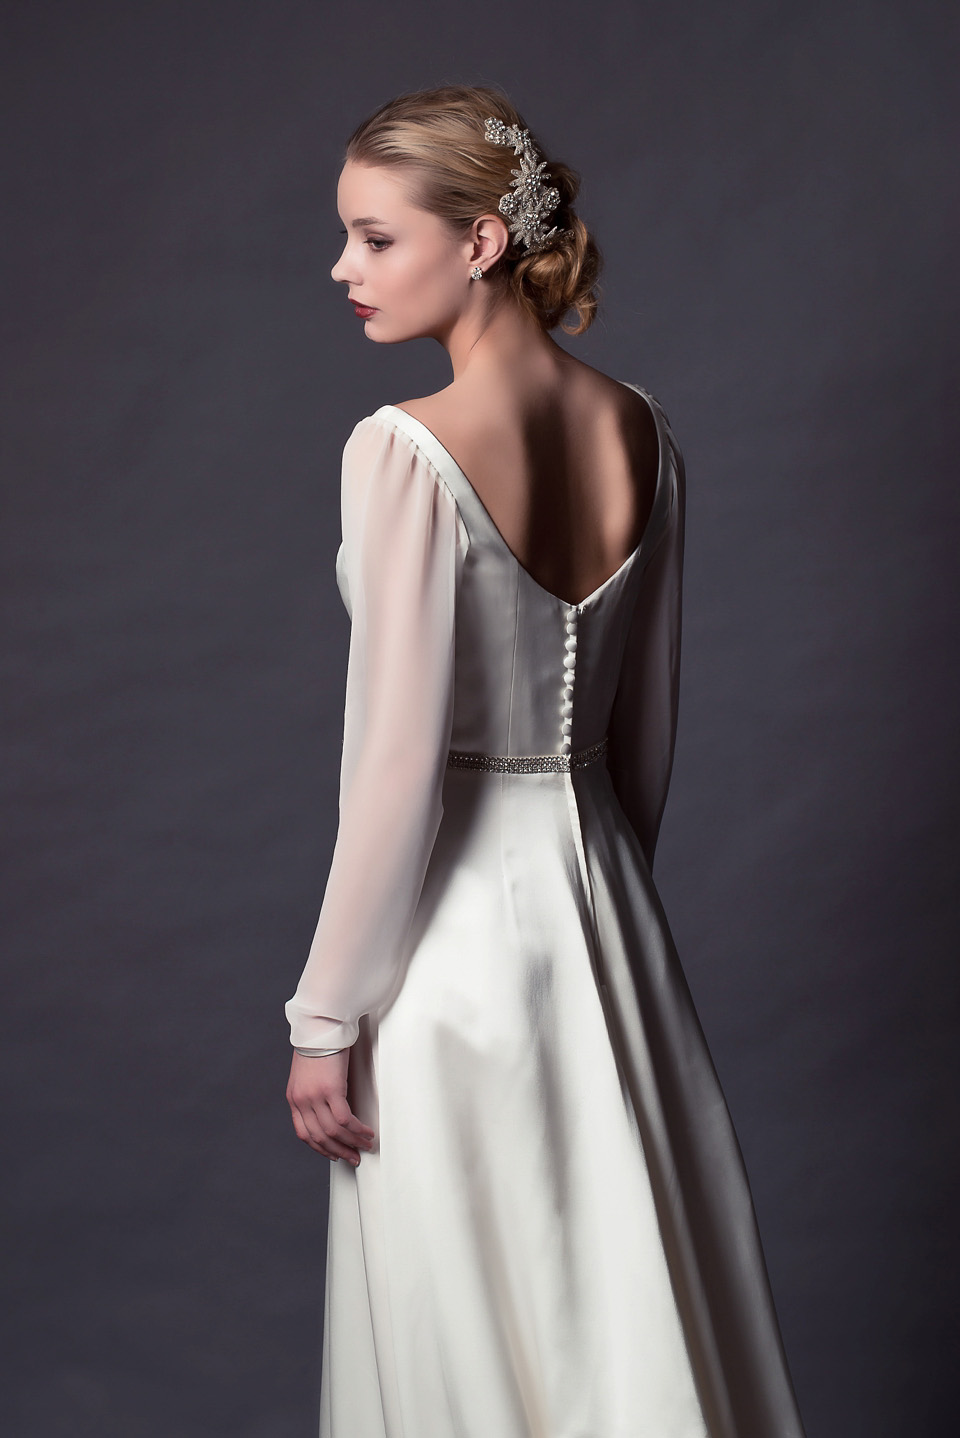 MiaMia by Alan Hannah – An Affordable Slice of Bridal Couture